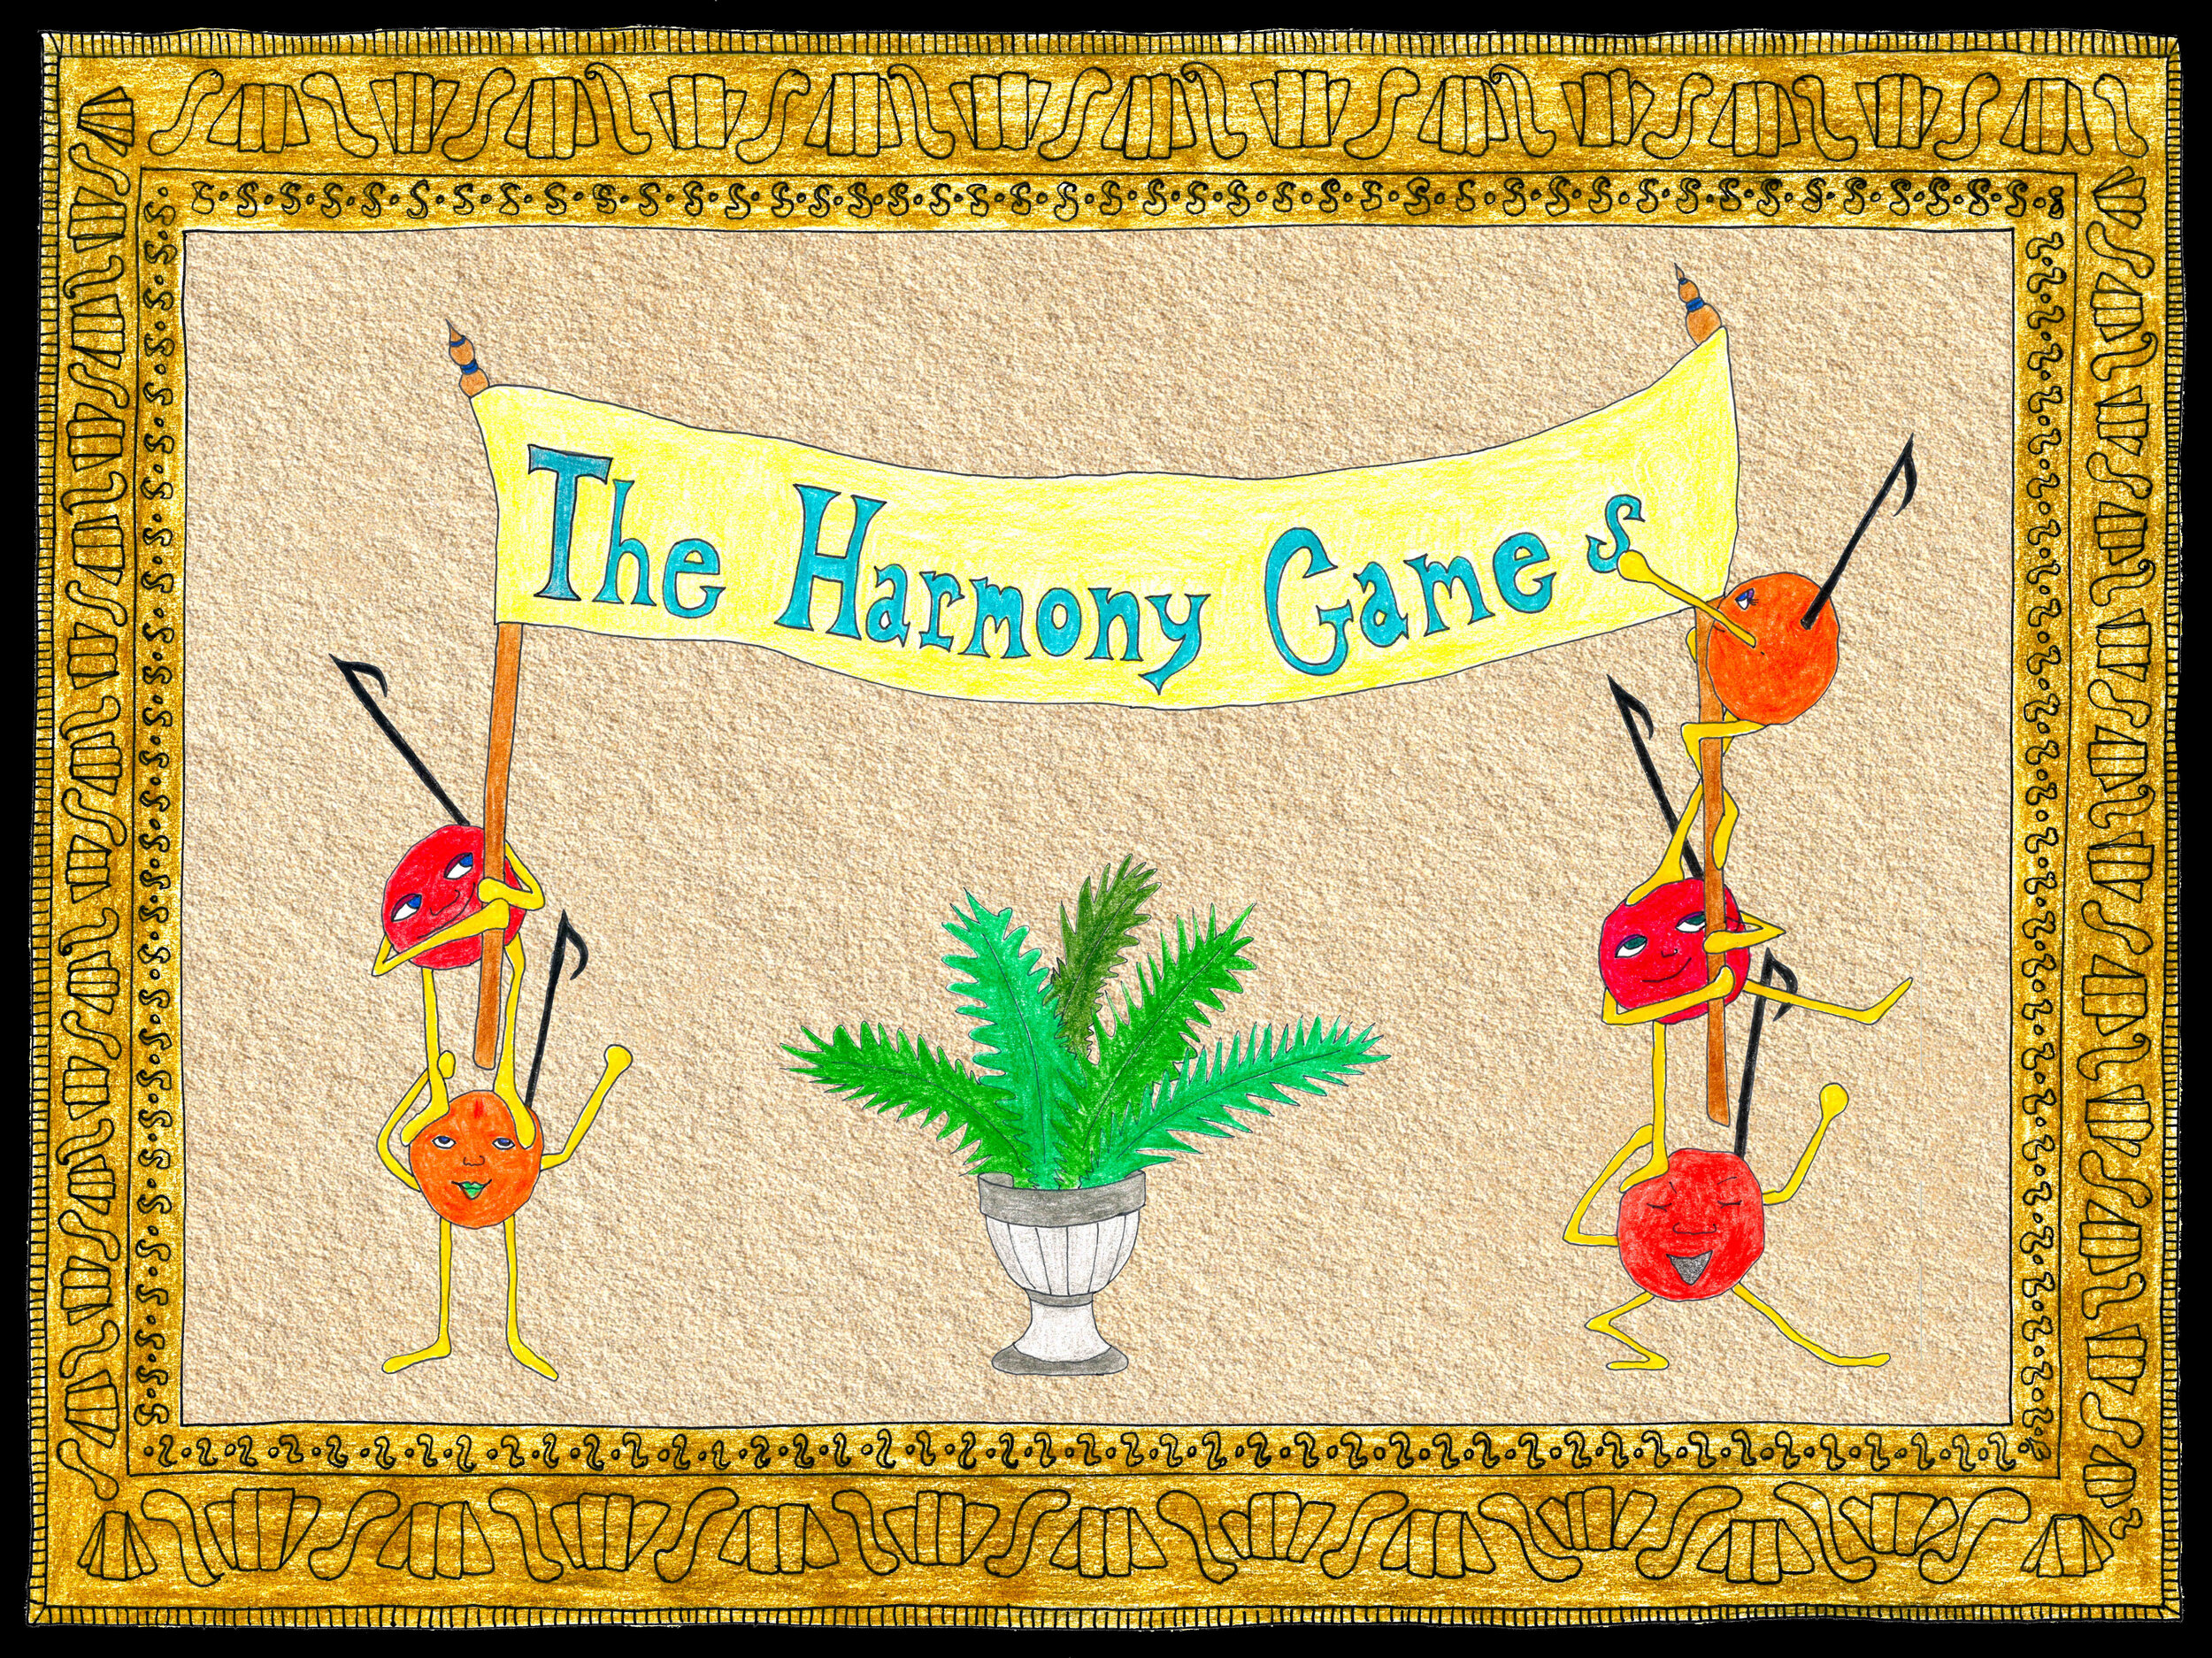 The harmony games - Music and Story by Yaniv SegalArtwork by Cathy Weinfield-Zell